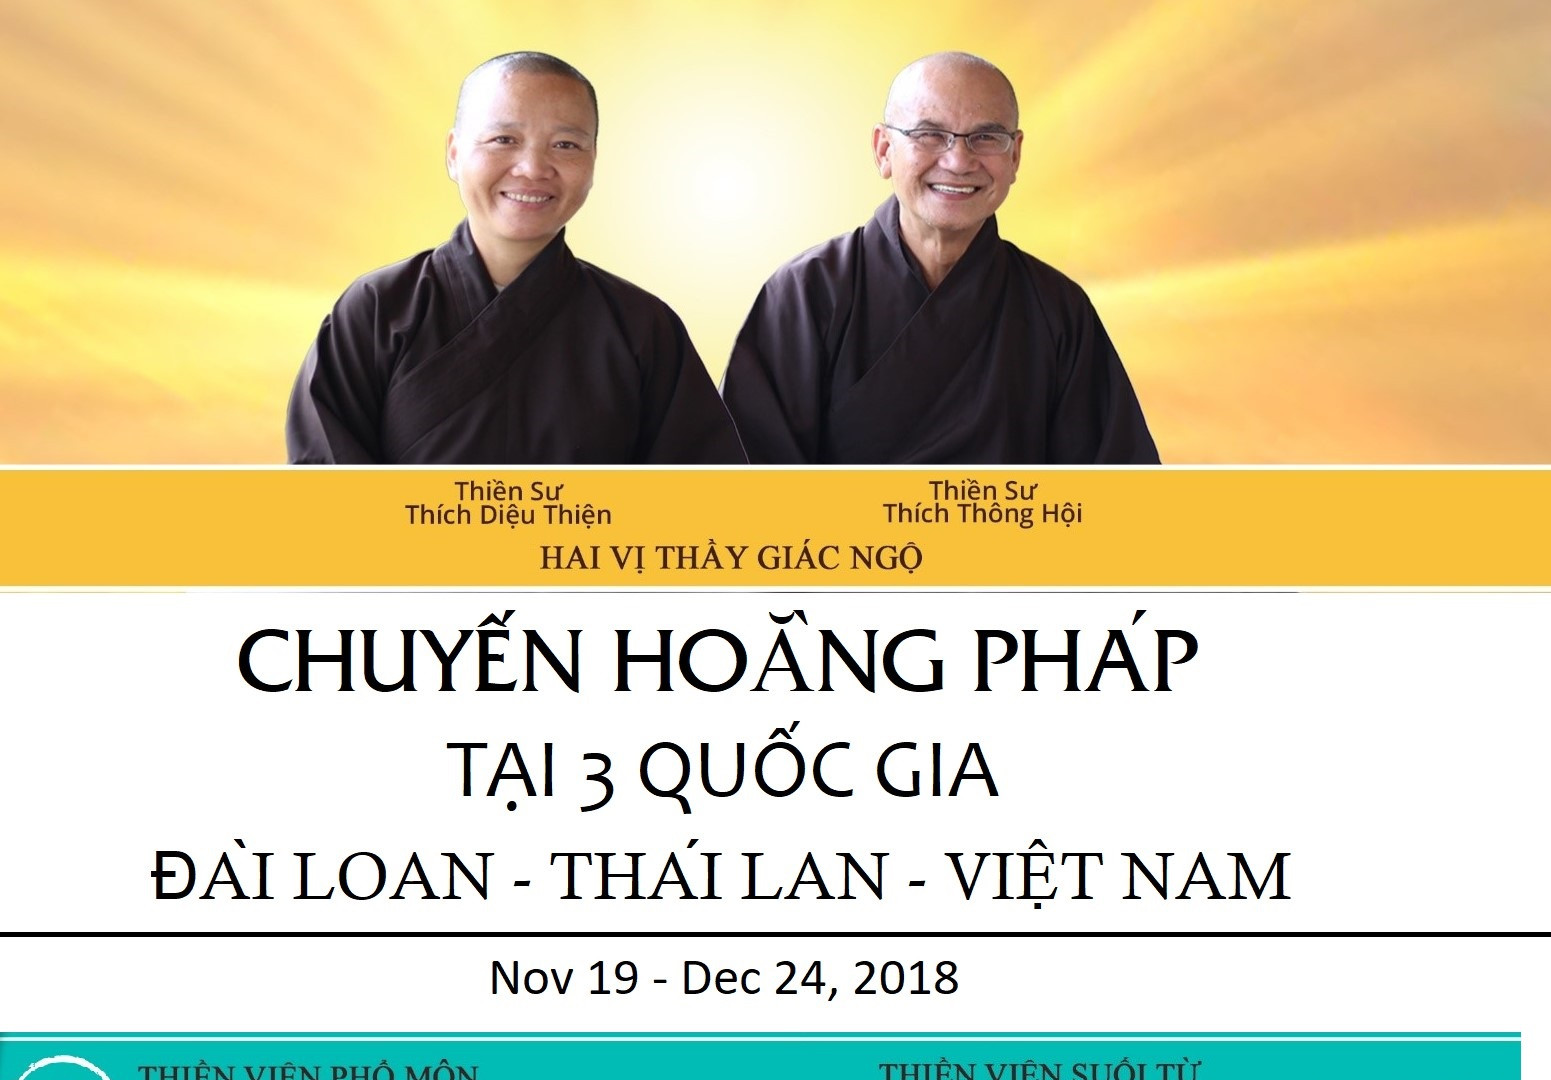 cover page for VN slideshow.jpg